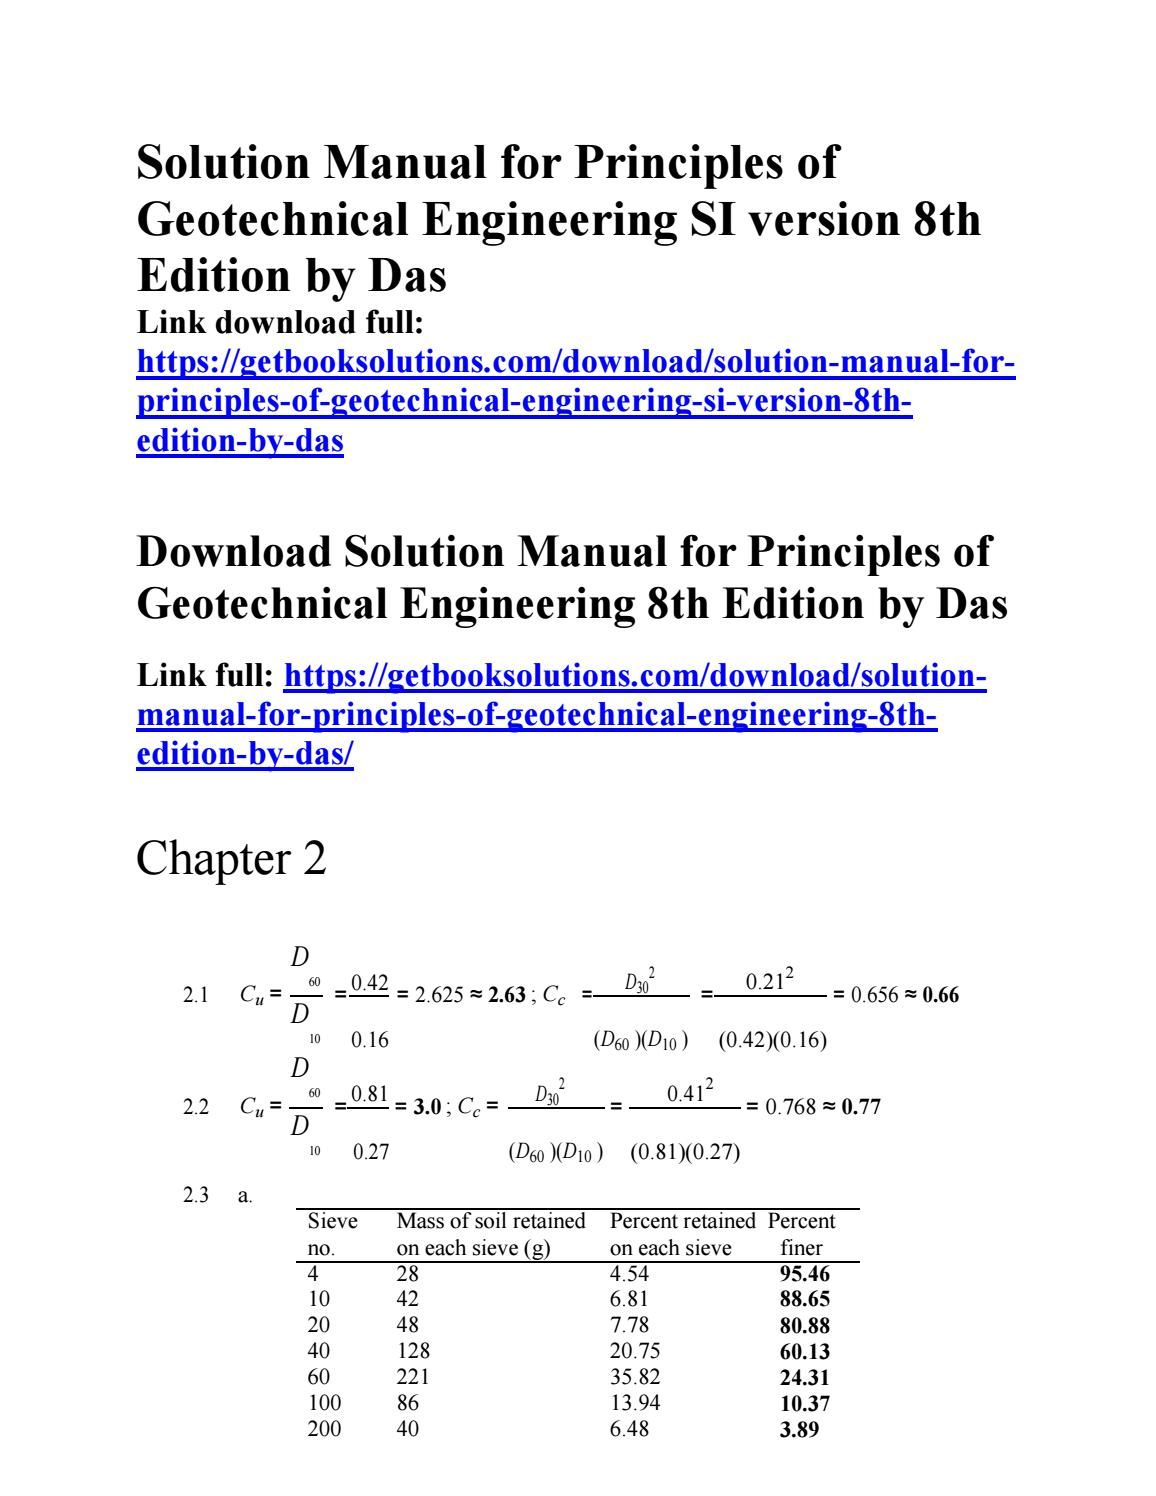 solution manual for principles of geotechnical engineering si rh pinterest com geotechnical earthquake engineering solutions manual geotechnical earthquake engineering solutions manual